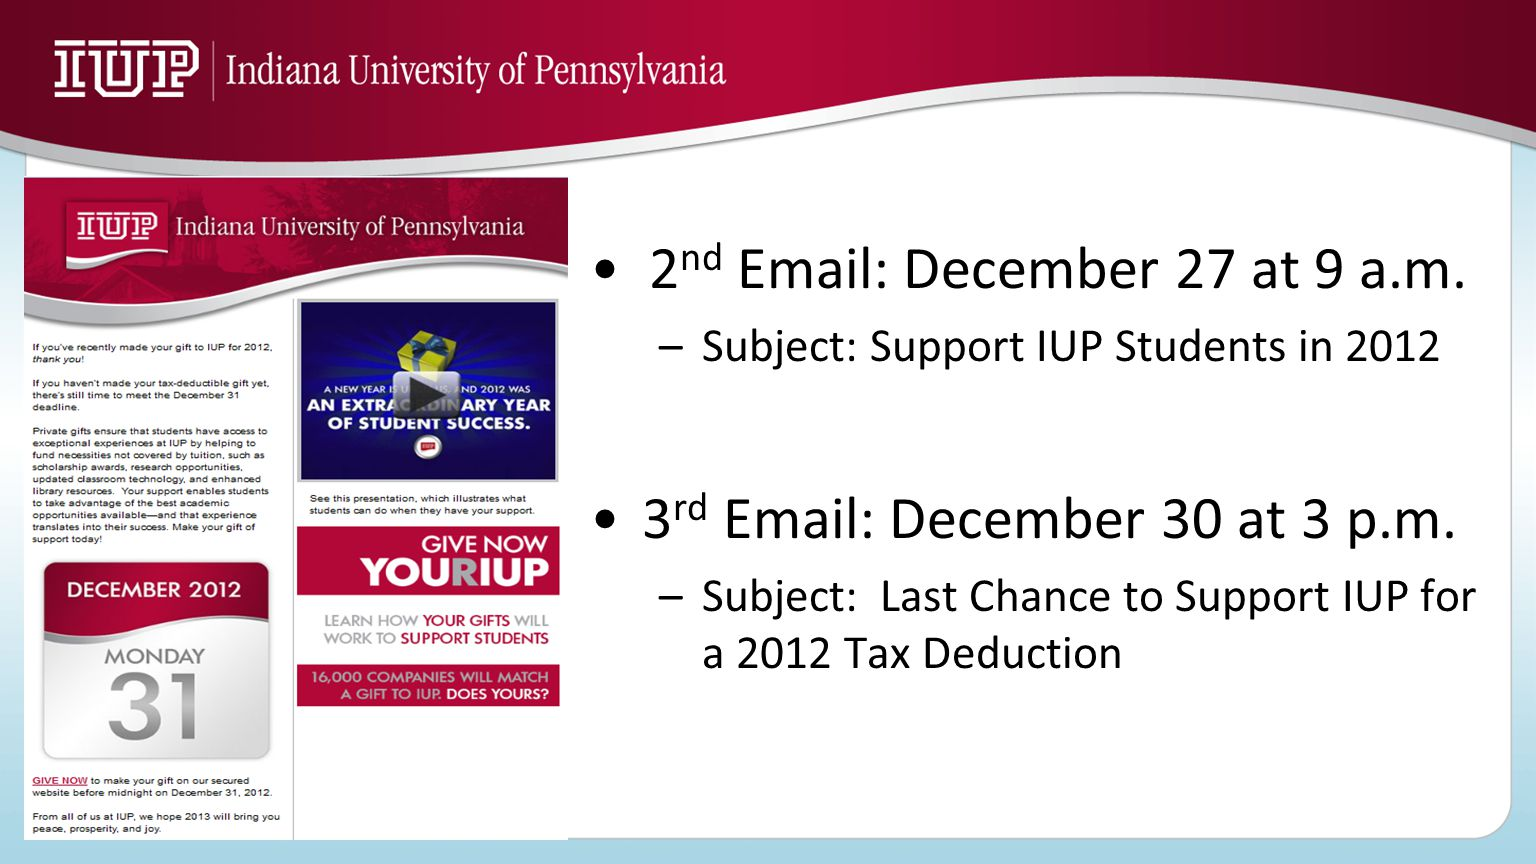 2 nd Email: December 27 at 9 a.m. –Subject: Support IUP Students in 2012 3 rd Email: December 30 at 3 p.m. –Subject: Last Chance to Support IUP for a